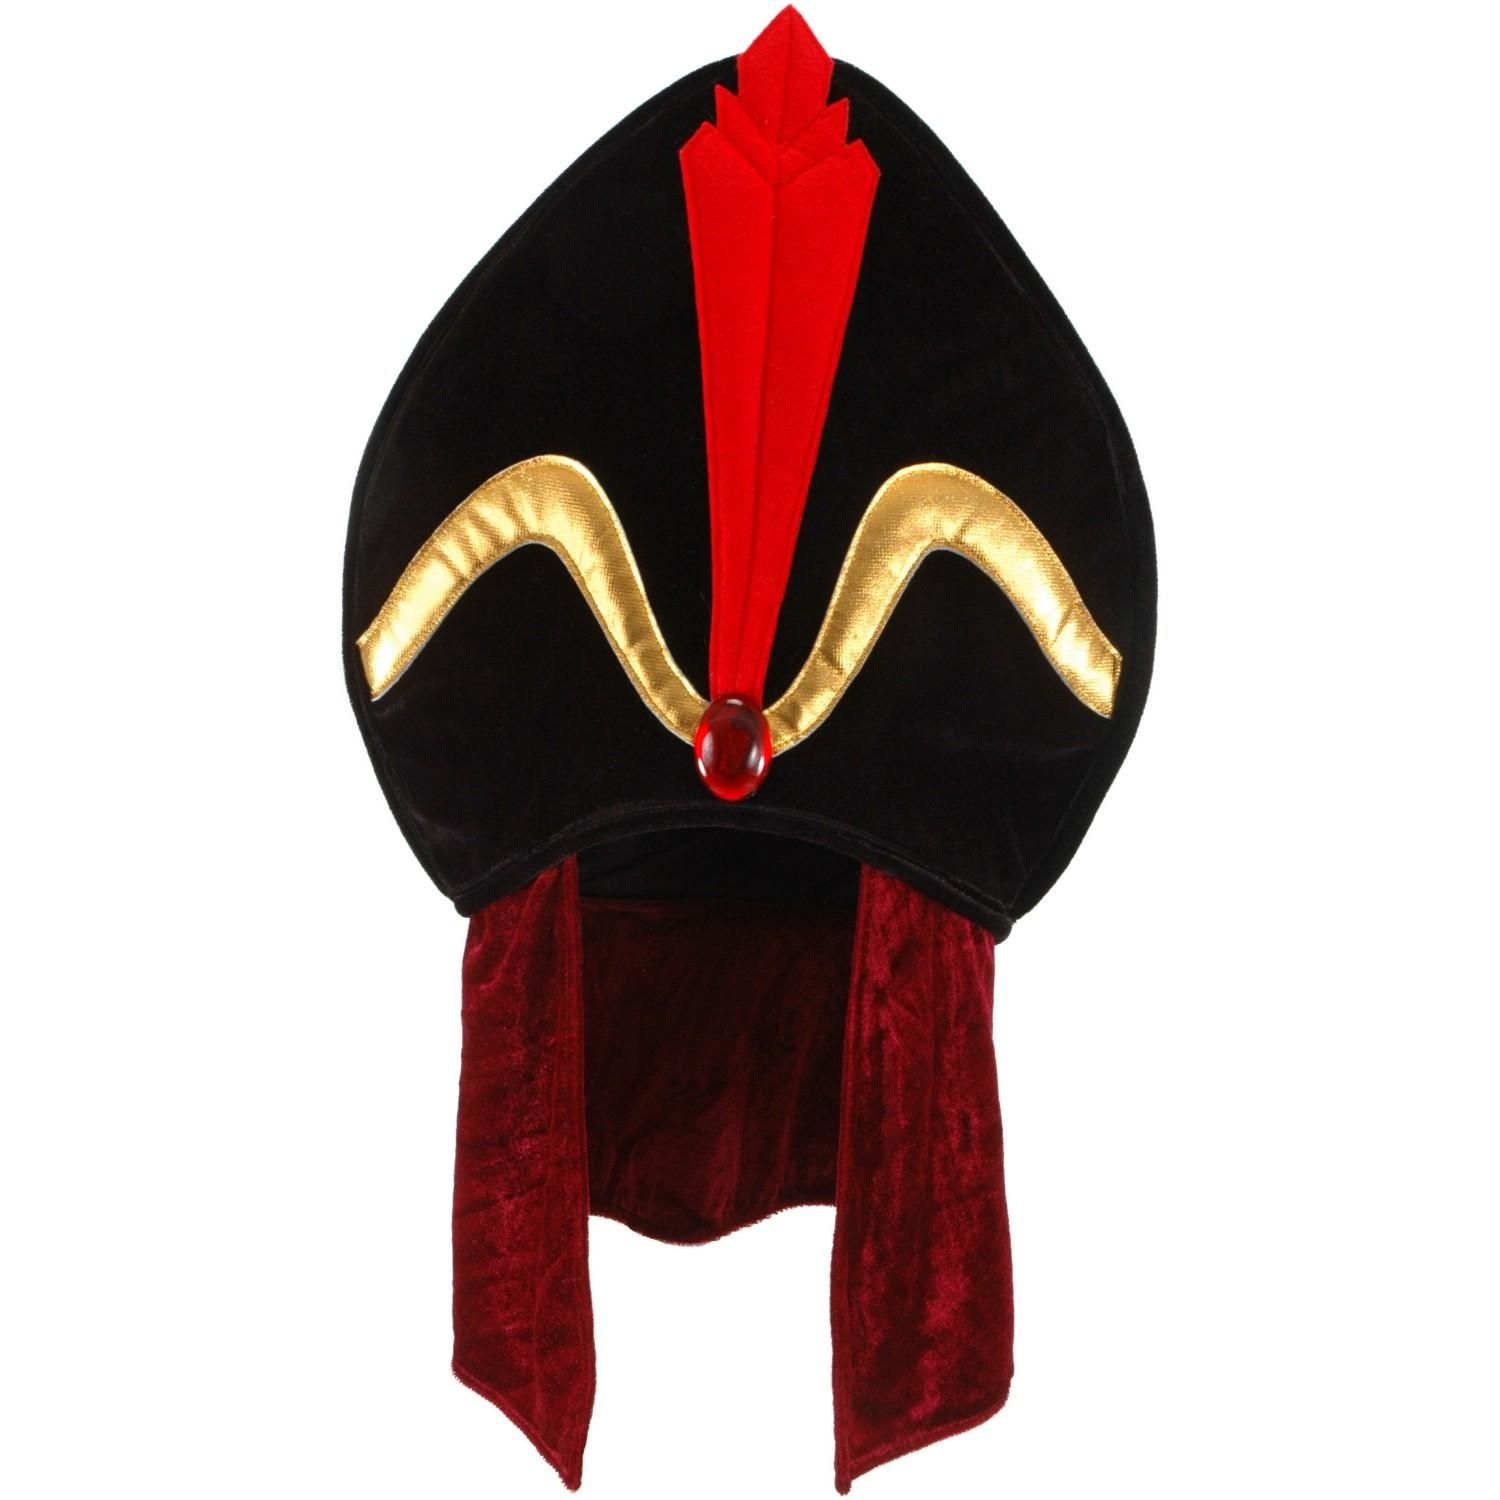 Disneyland halloween costumes  sc 1 st  Pinterest & Disney - Jafar Hat Adult | Disneyland halloween costumes